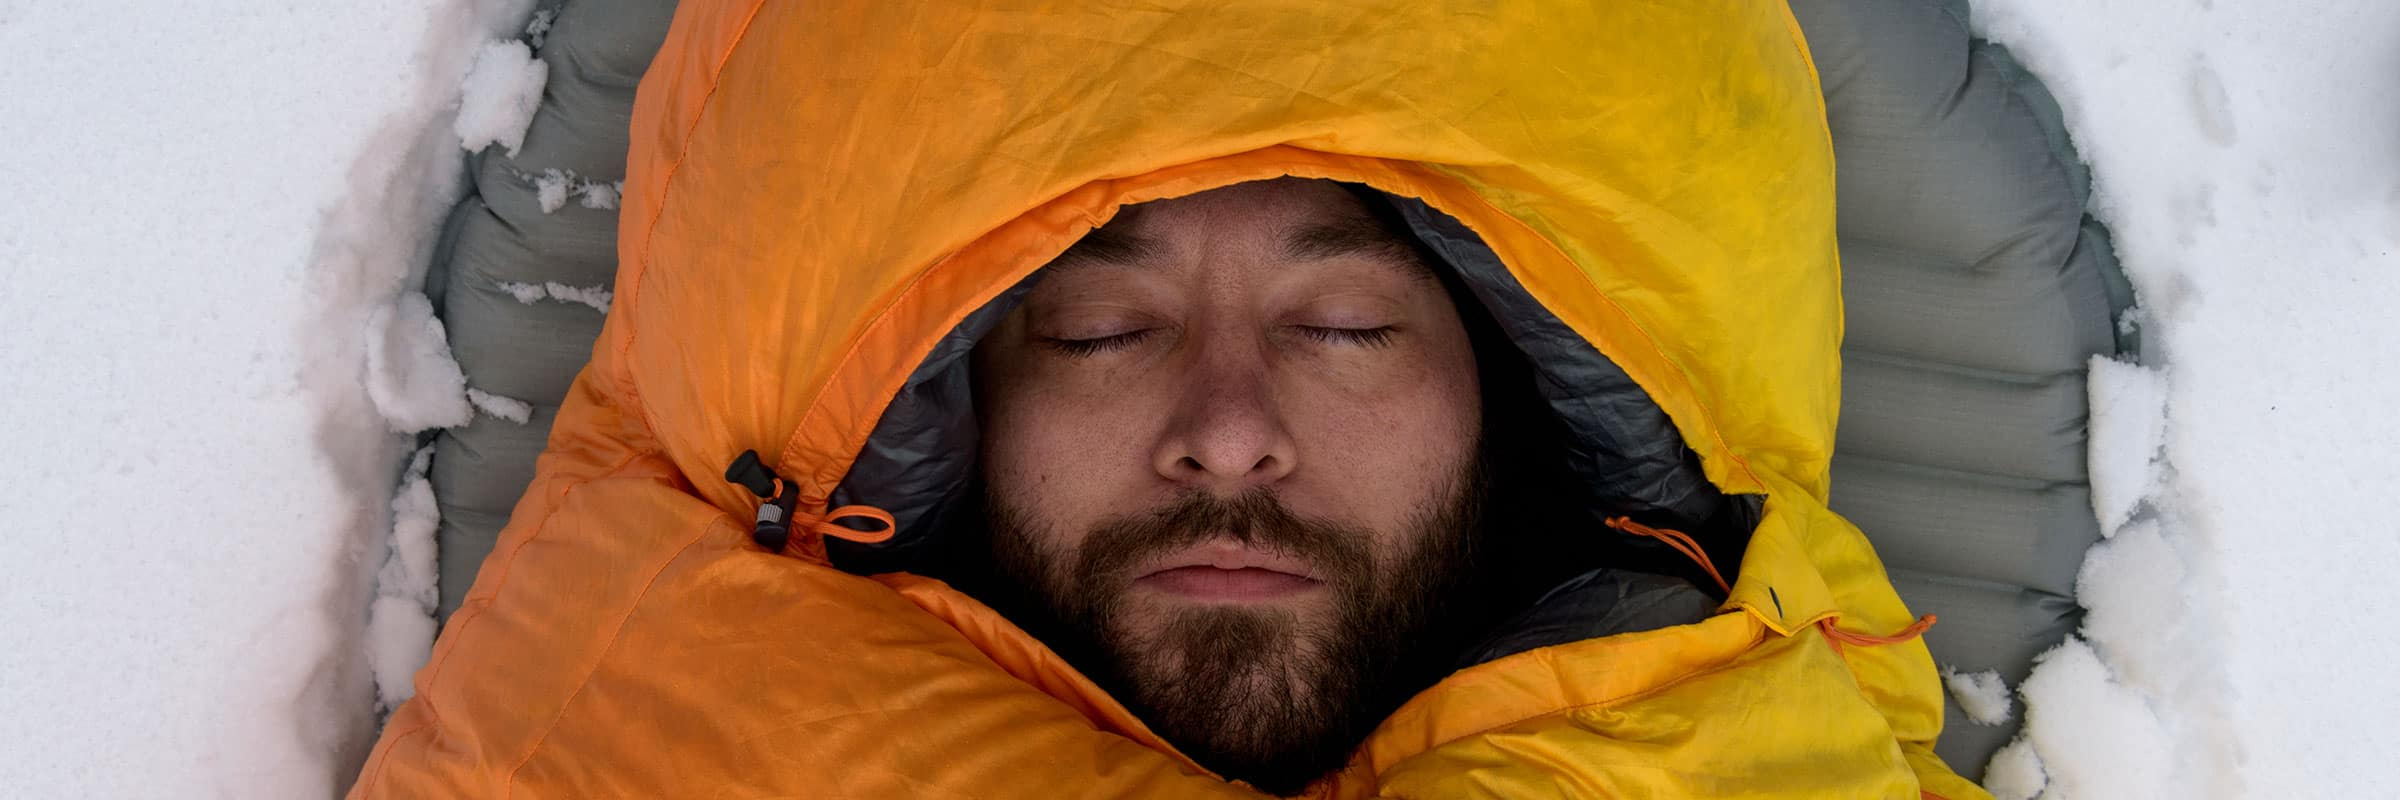 Sleeping Bags, Therm-a-Rest. Therm-a-Rest Oberon Sleeping Bag Reviewed